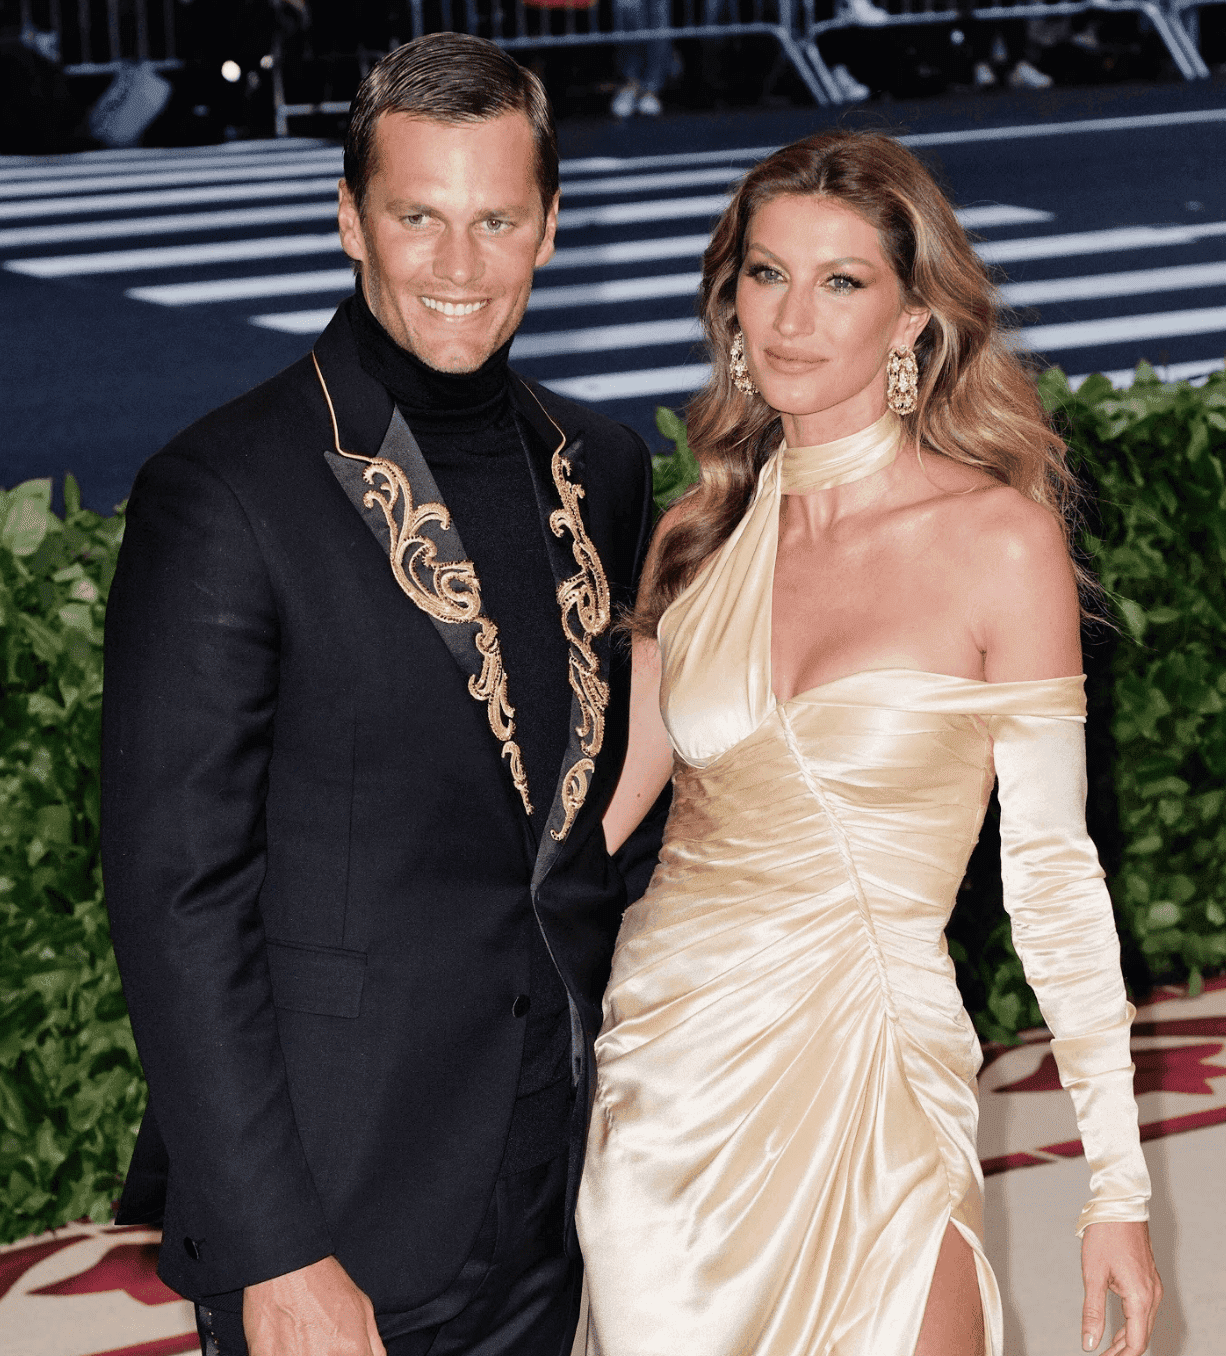 Tom Brady and Gisele Bündchen at the Heavenly Bodies: Fashion & The Catholic Imagination Costume Institute Gala on May 7, 2018. | Source: Getty Images